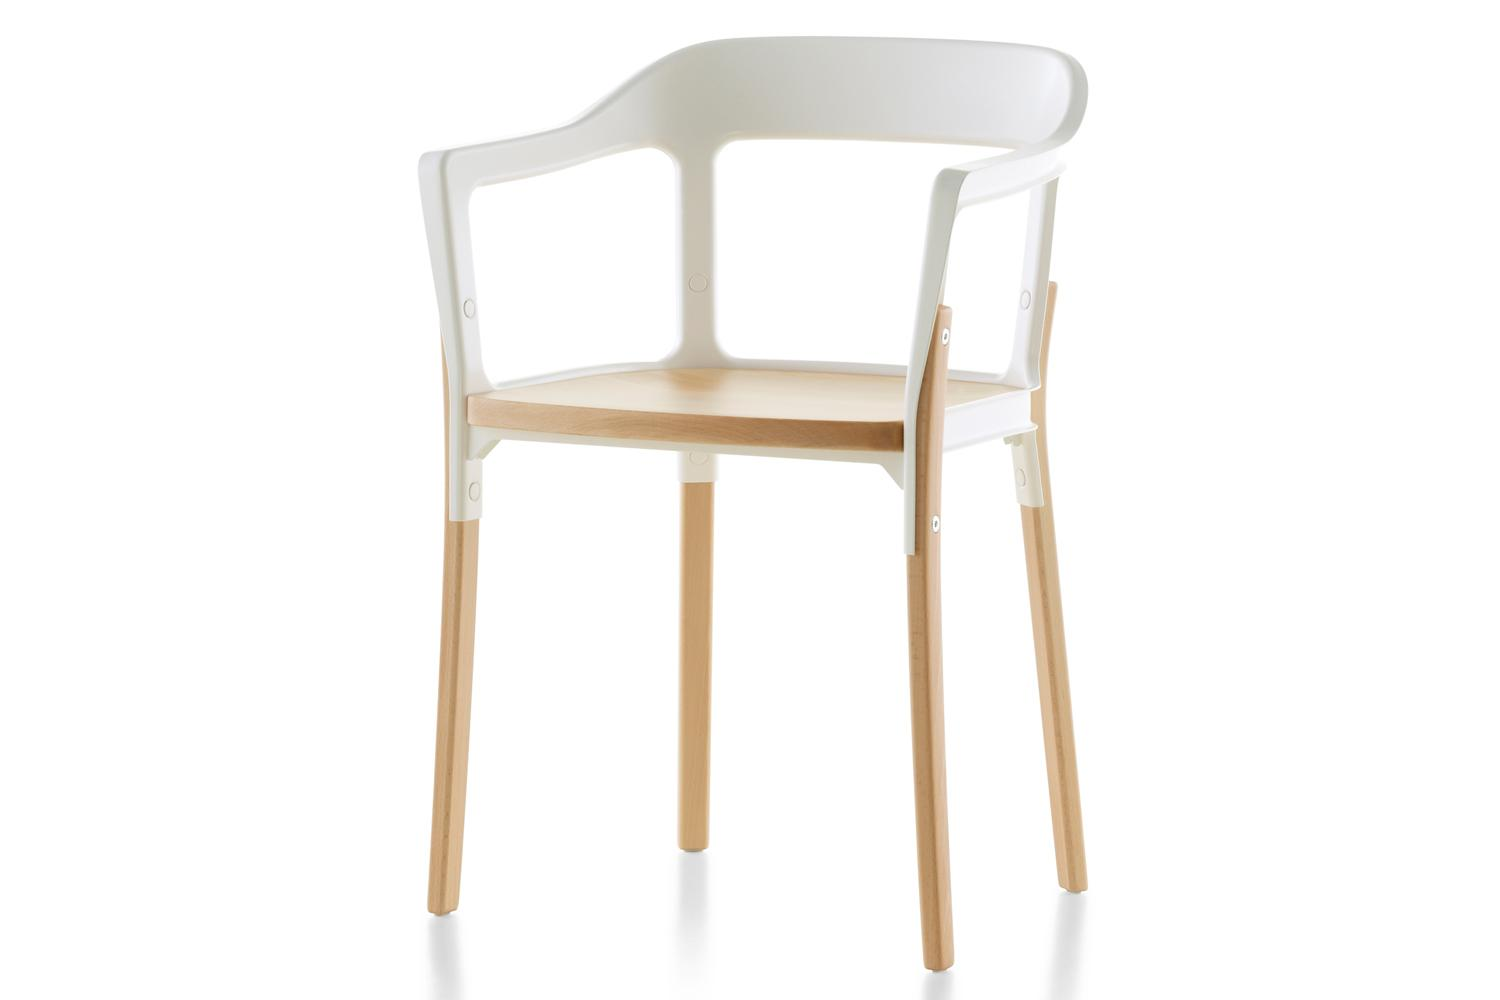 Steelwood_Chair_Angle.jpg 1,500×1,000 pixels